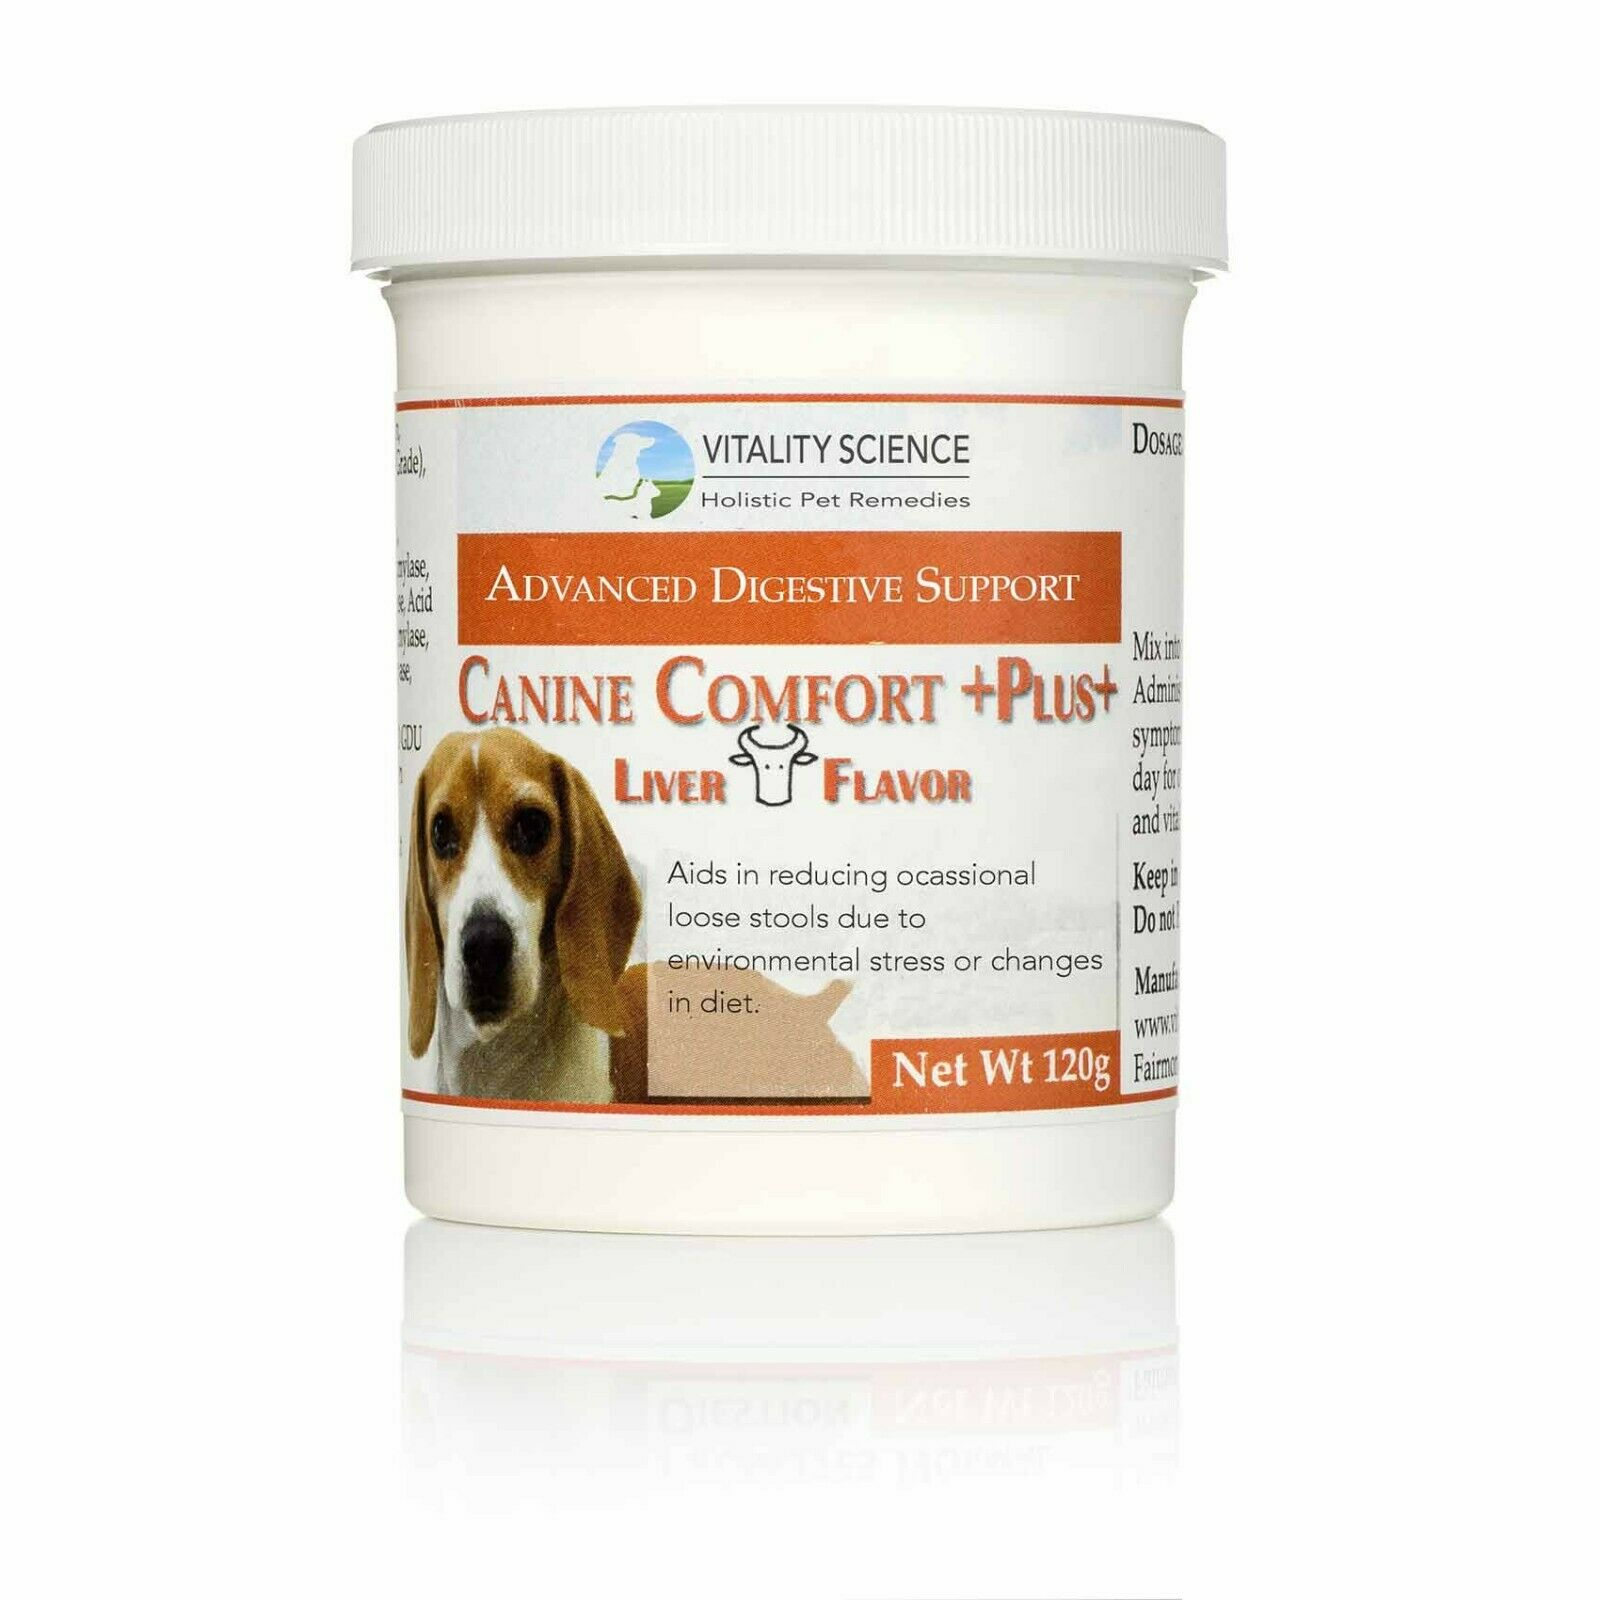 Vitality Science Canine Comfort Plus  For Severe Dog Vomiting & Dog Diarrhea